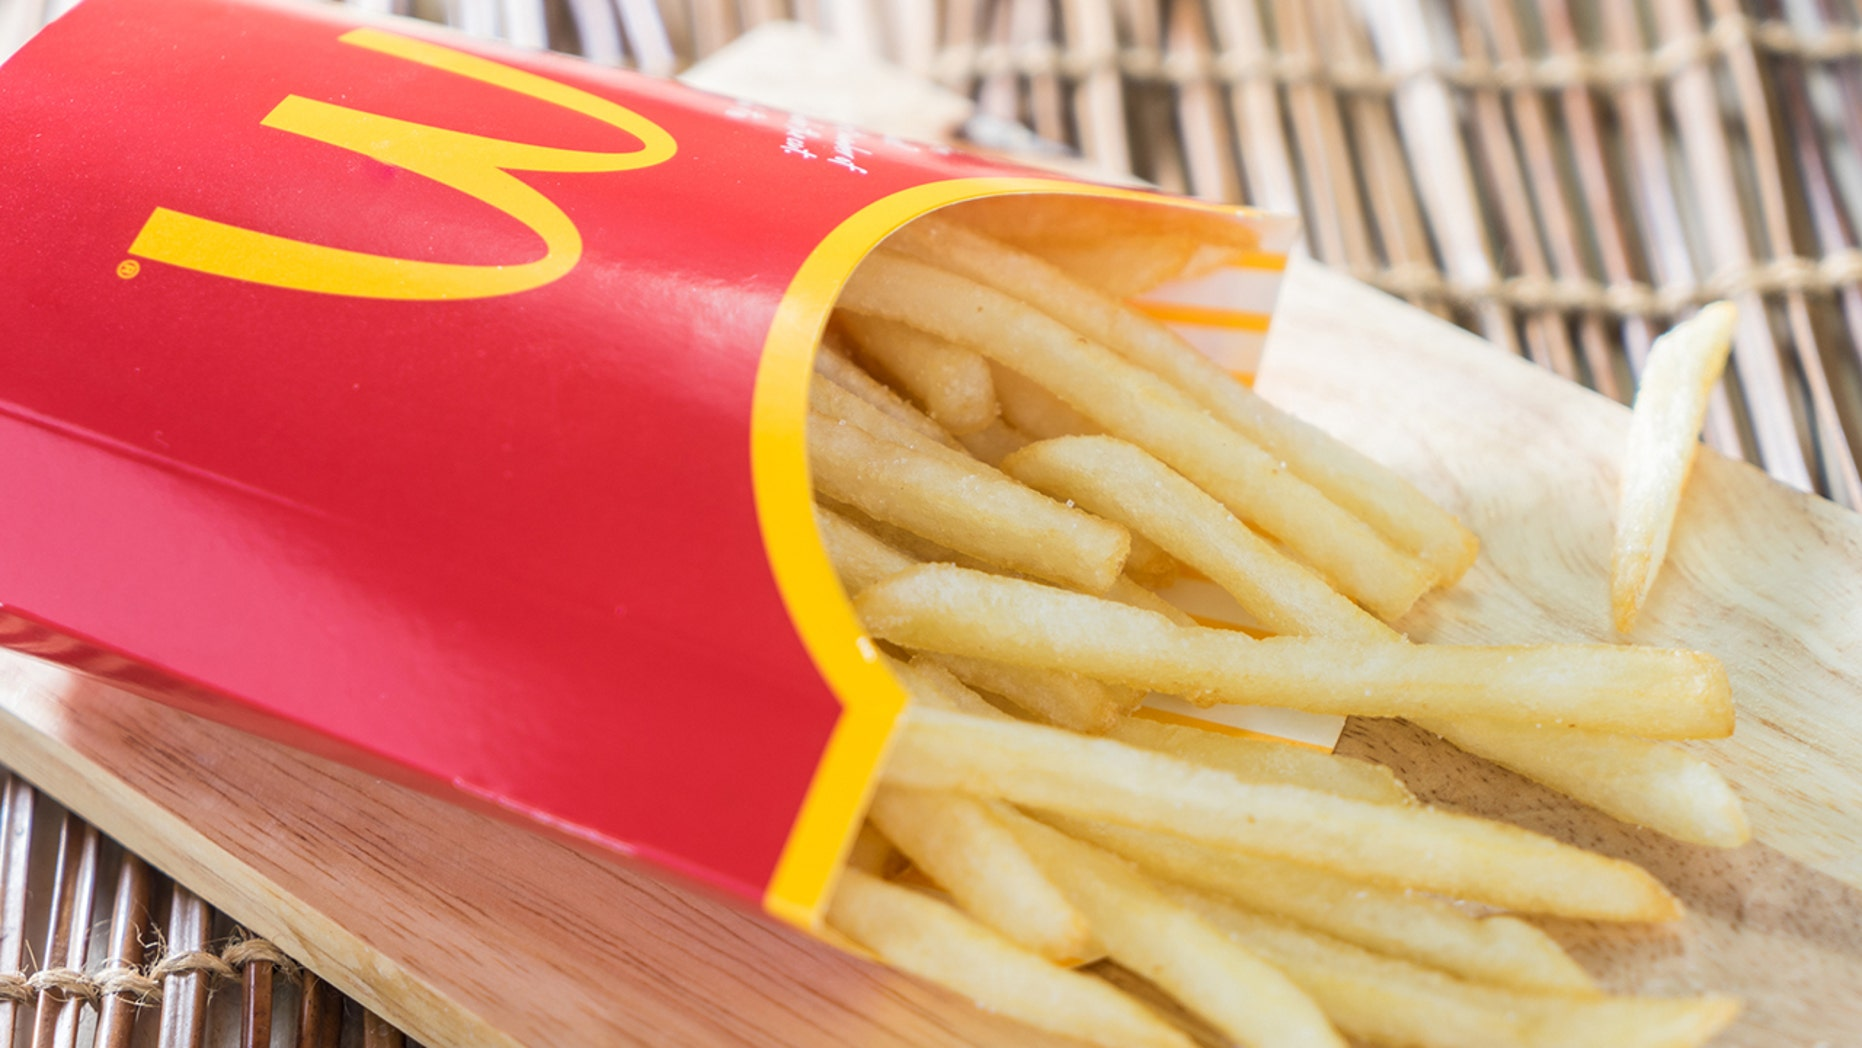 A Canadian man tried to take advantage of McDonald's 1 in 5 chances to win by purchasing 100 fries and one large drink.